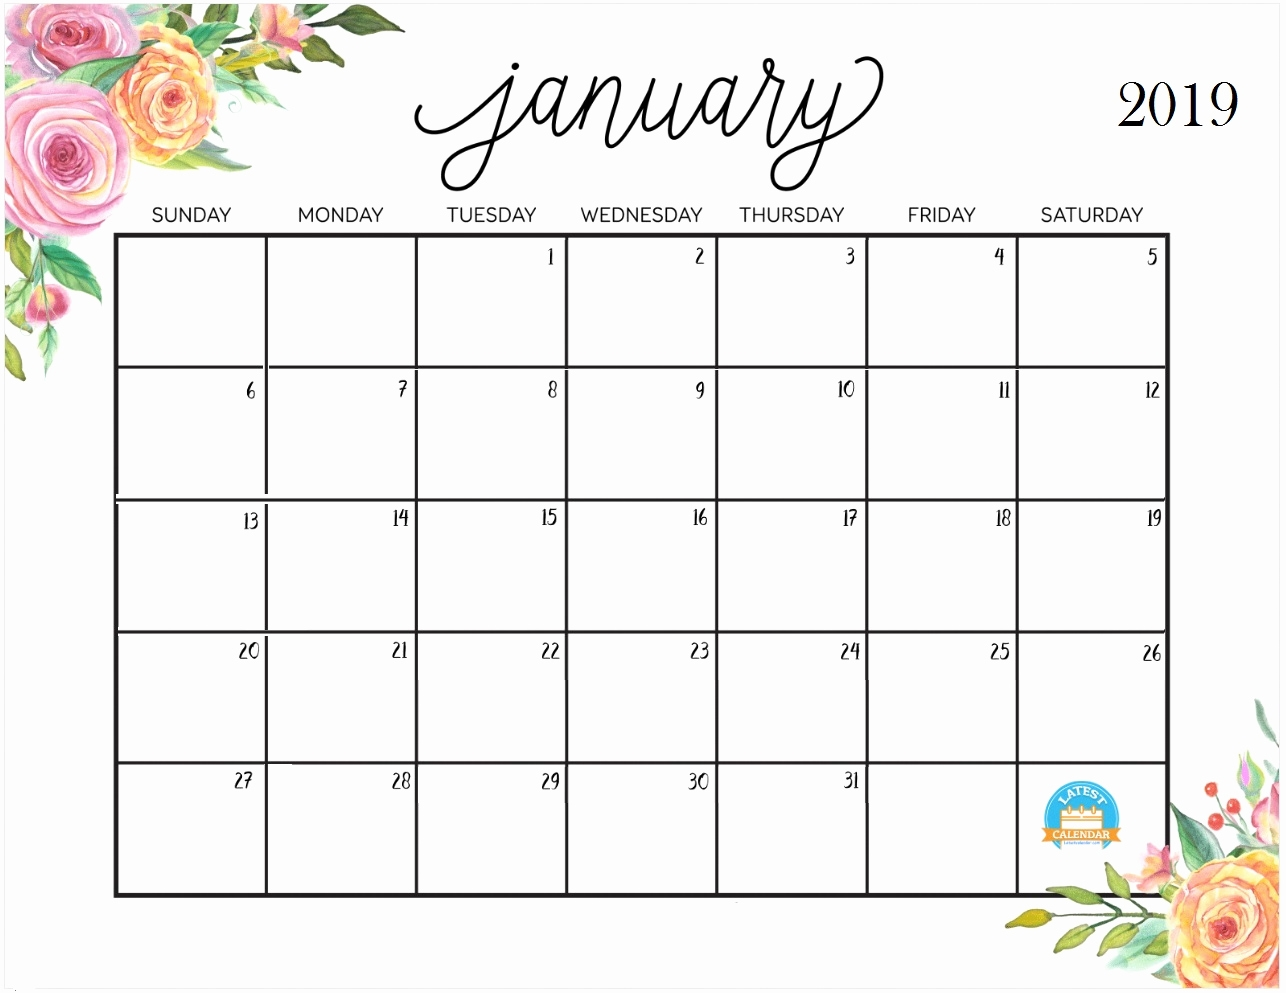 2019 calendar printable printable january 2019 calendar latest::January 2019 Calendar Printable Template